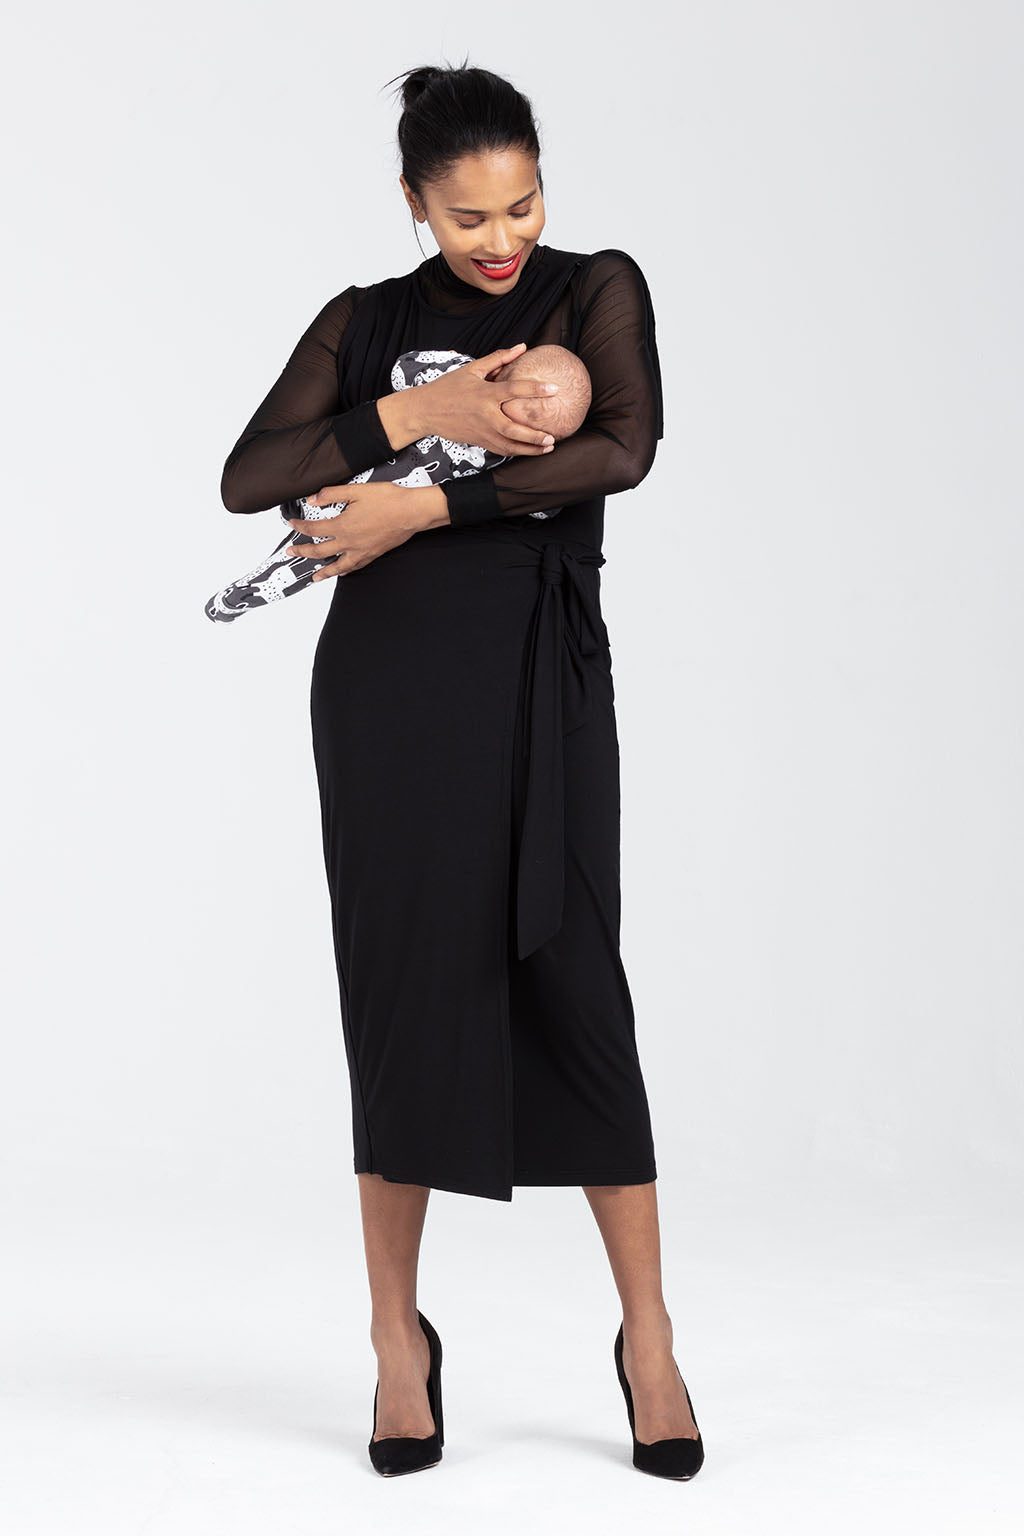 Smart Nursing Dress, Wrap Style in Black - Amelia by Sarka London - Breastfeeding access